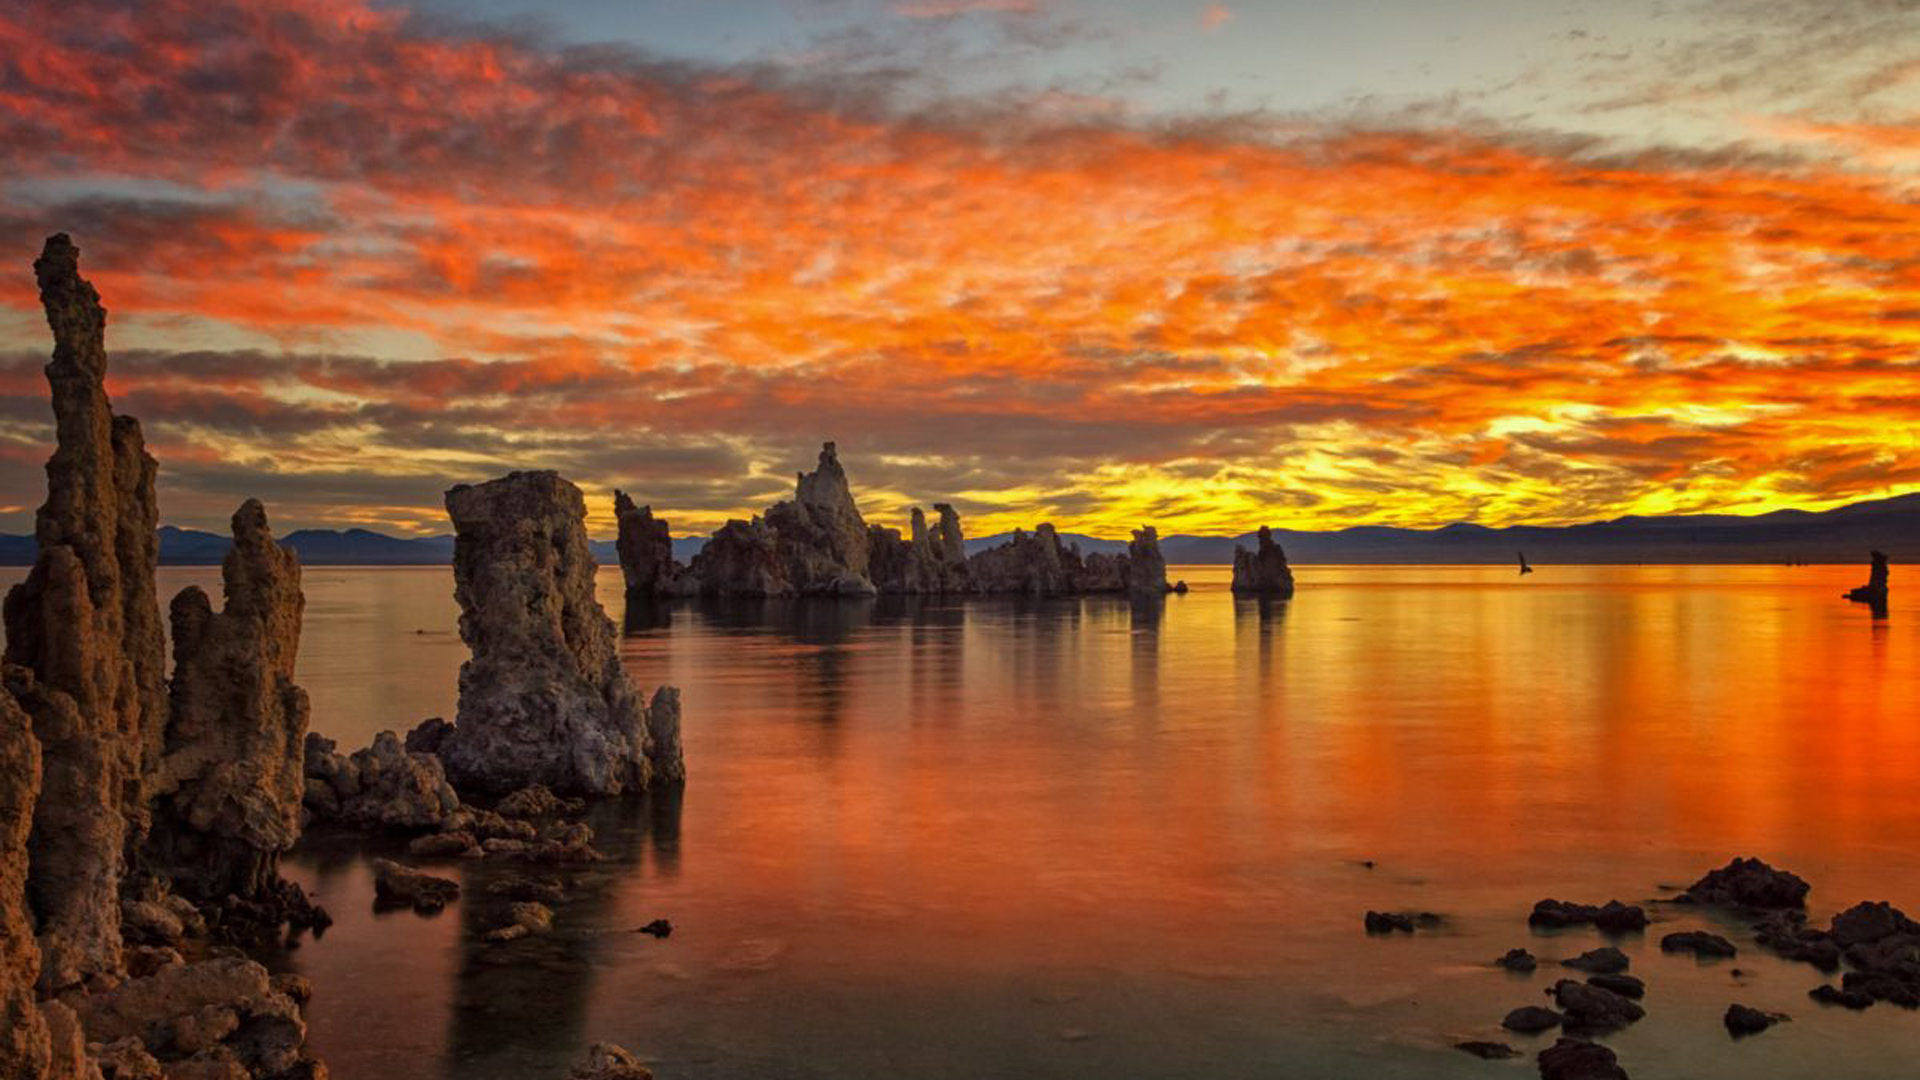 Water Fall Wallpaper Hd For Desktop Free Download Sunset At Mono Lake South Tufa Karptesti Towers In Lake